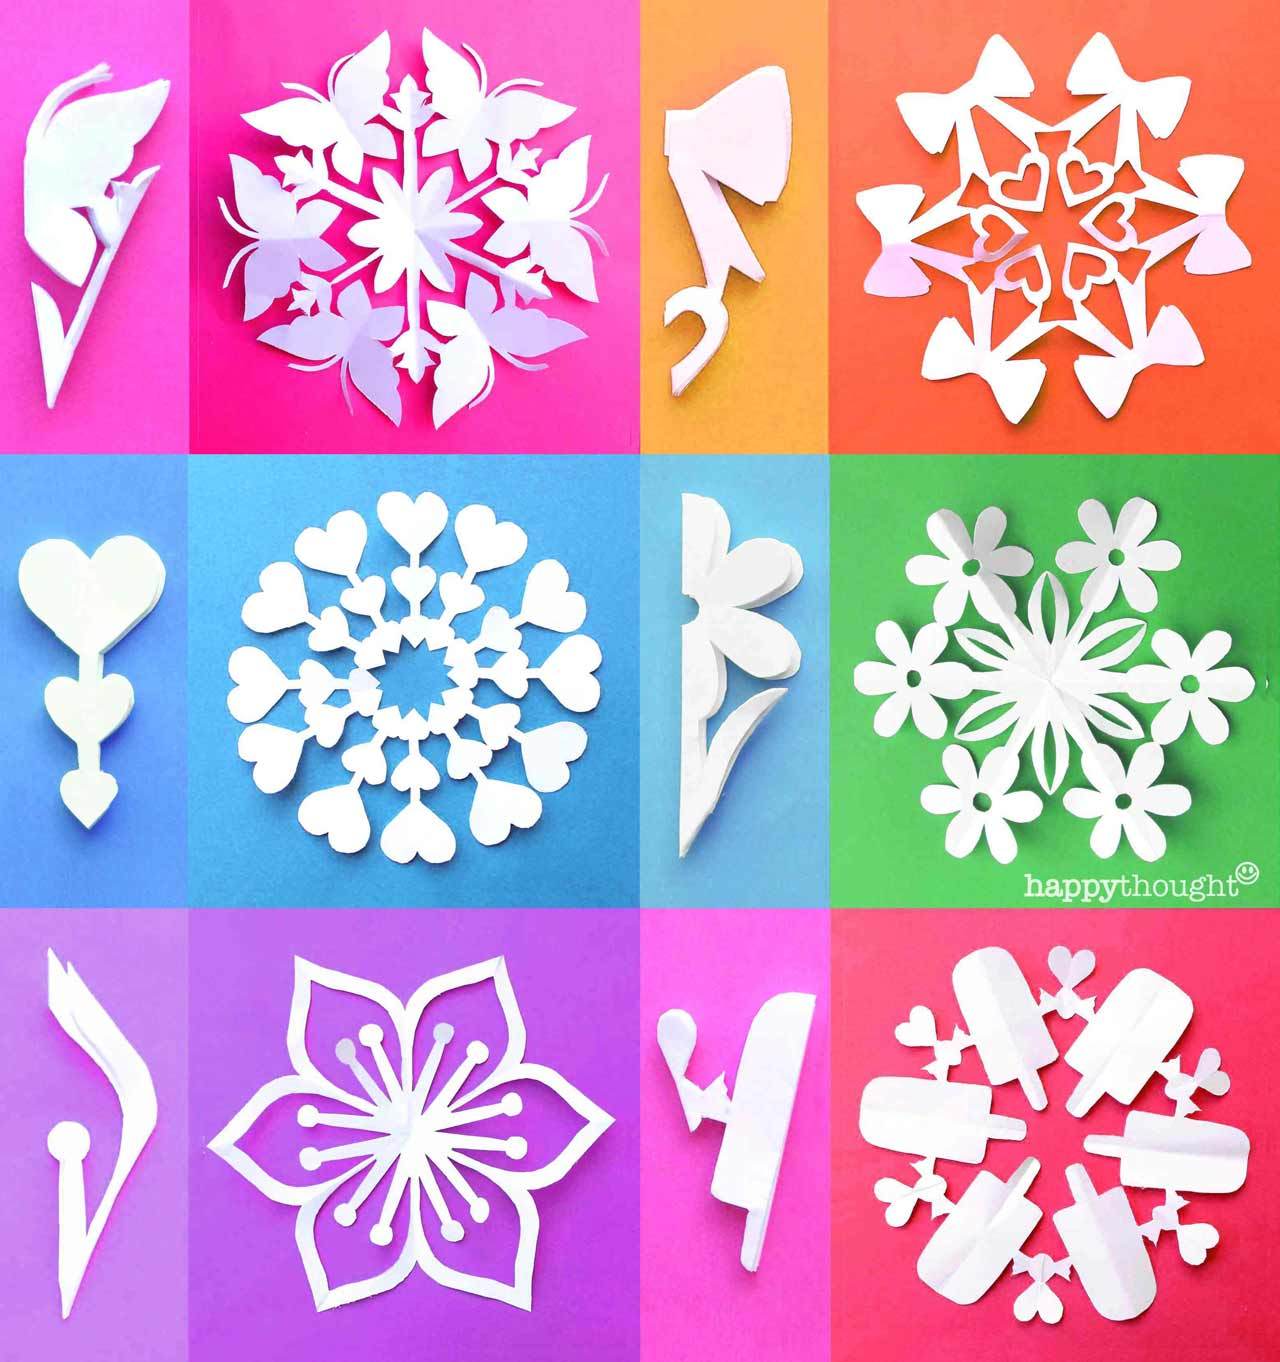 12 Valentine snowflake templates - valentine-snowflake patterns designs templates DIY craft decoration